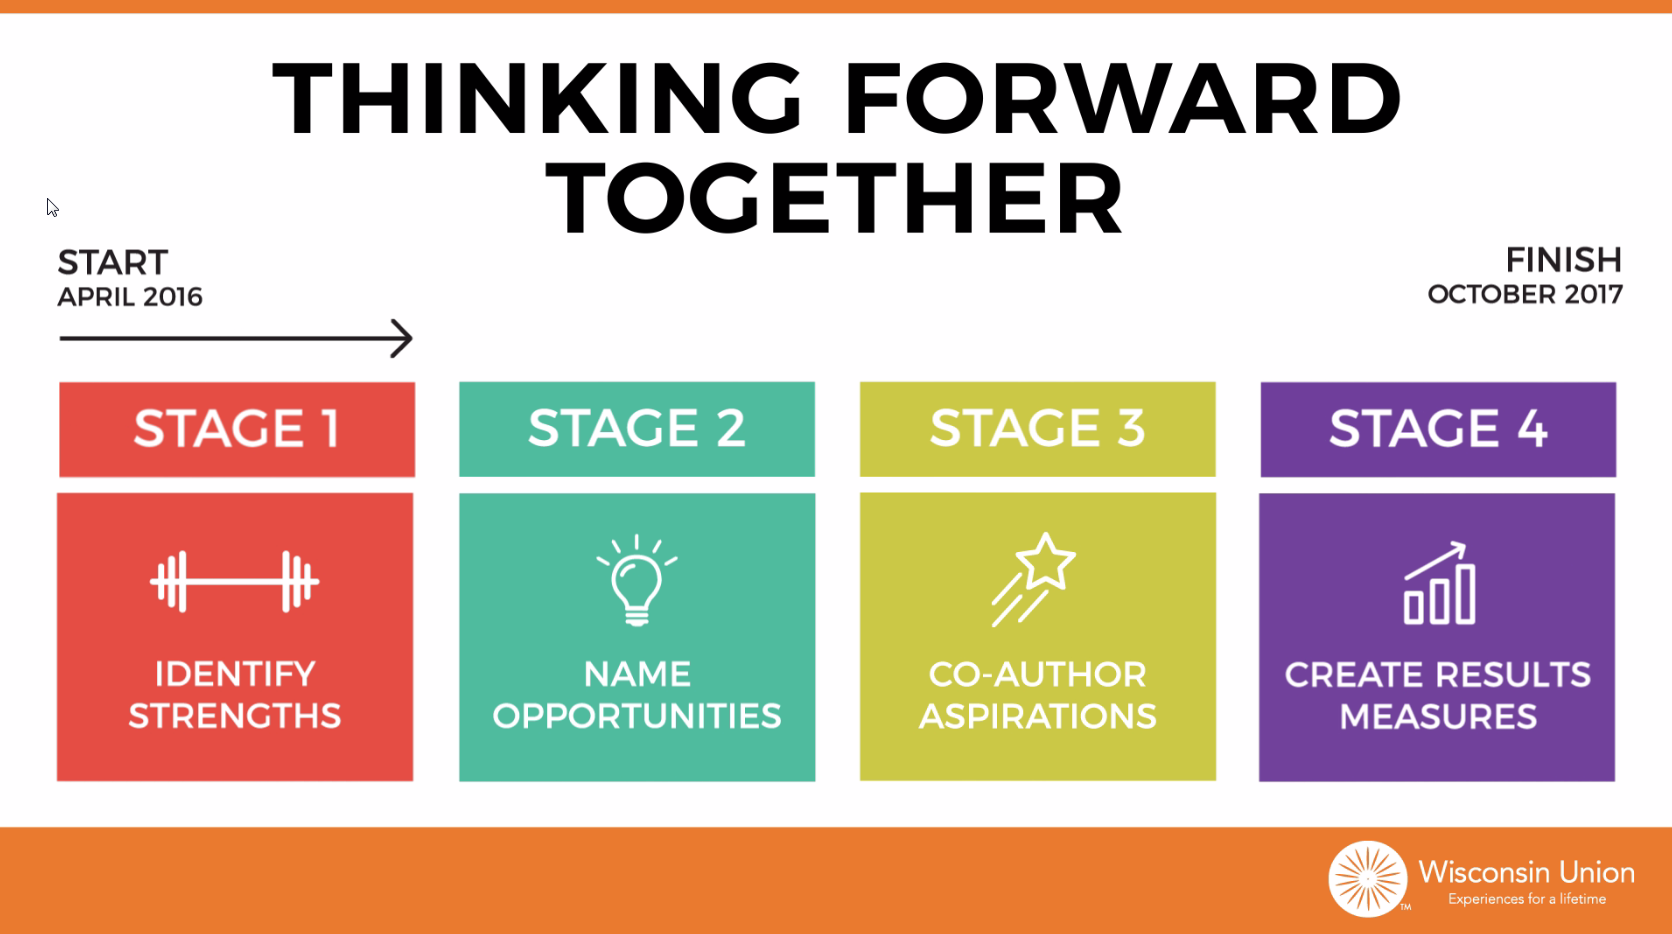 Thinking Forward Together Video